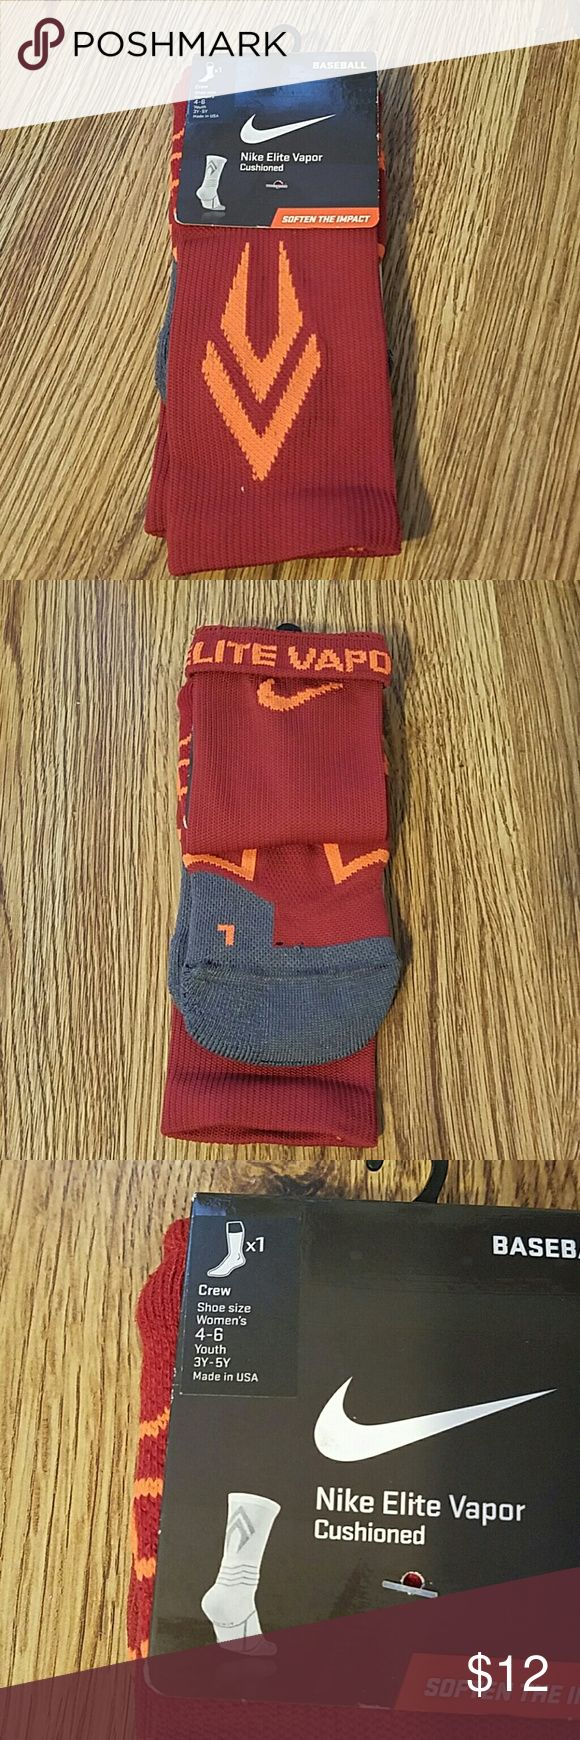 Nike Vapor Elite socks Burnt red and orange elite vapor socks. 'Elite Vapor' is written on the inside and can be seen when you roll down the cuff. Nike Accessories Hosiery & Socks